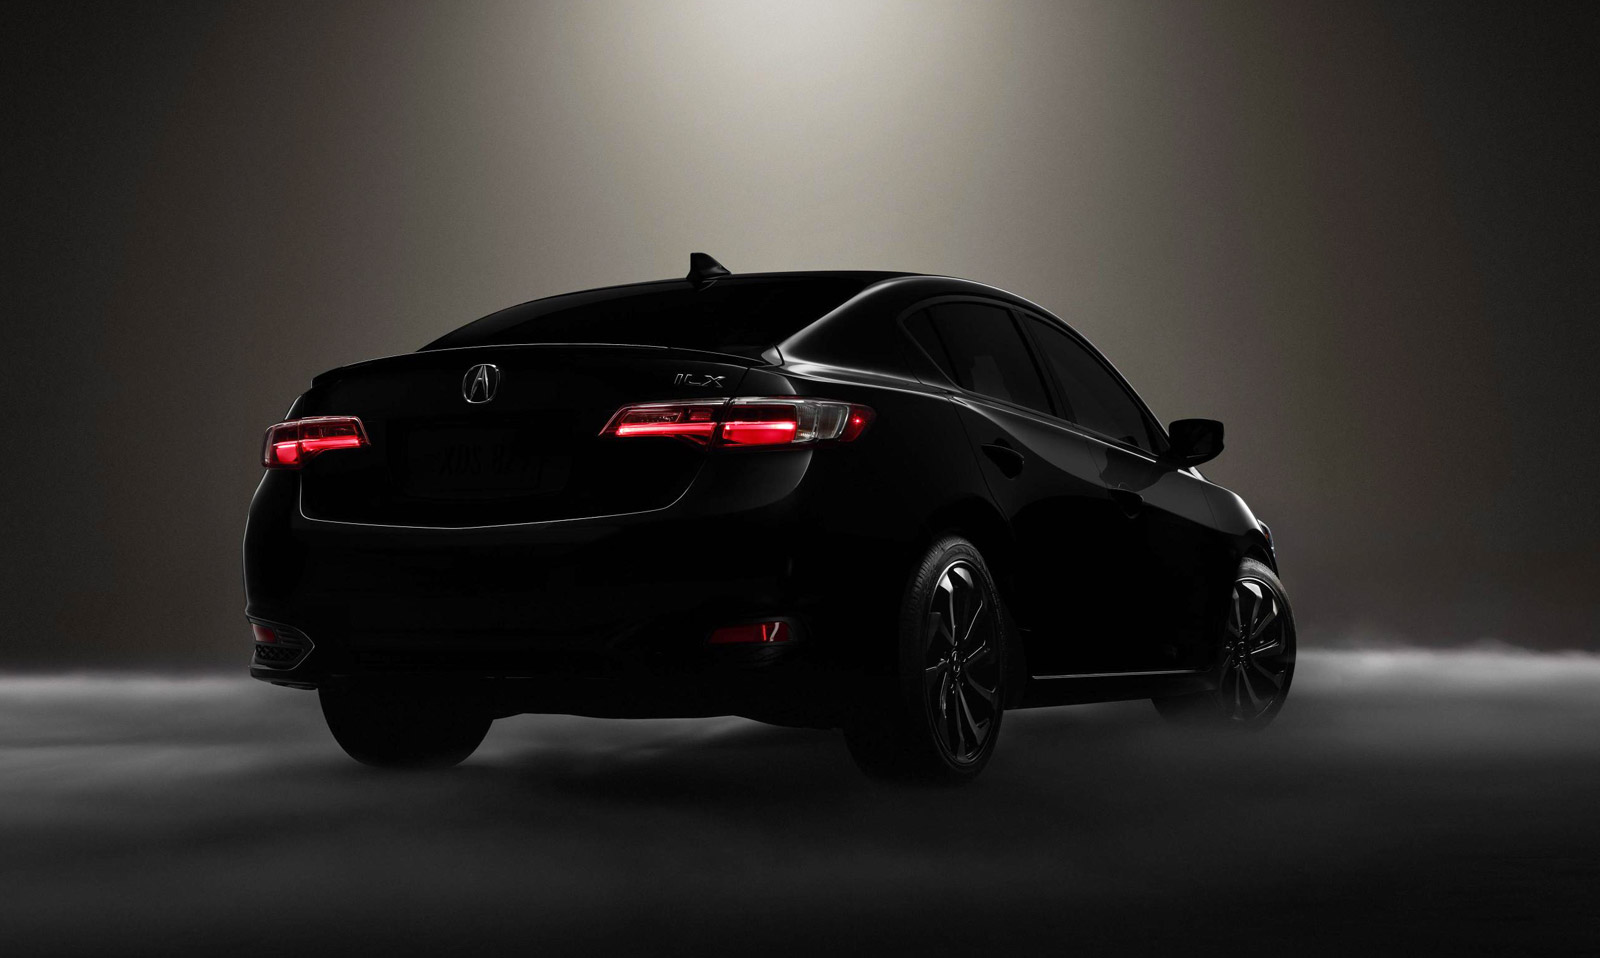 photo minded review car article autoweek ilx notes most civic acura reviews a